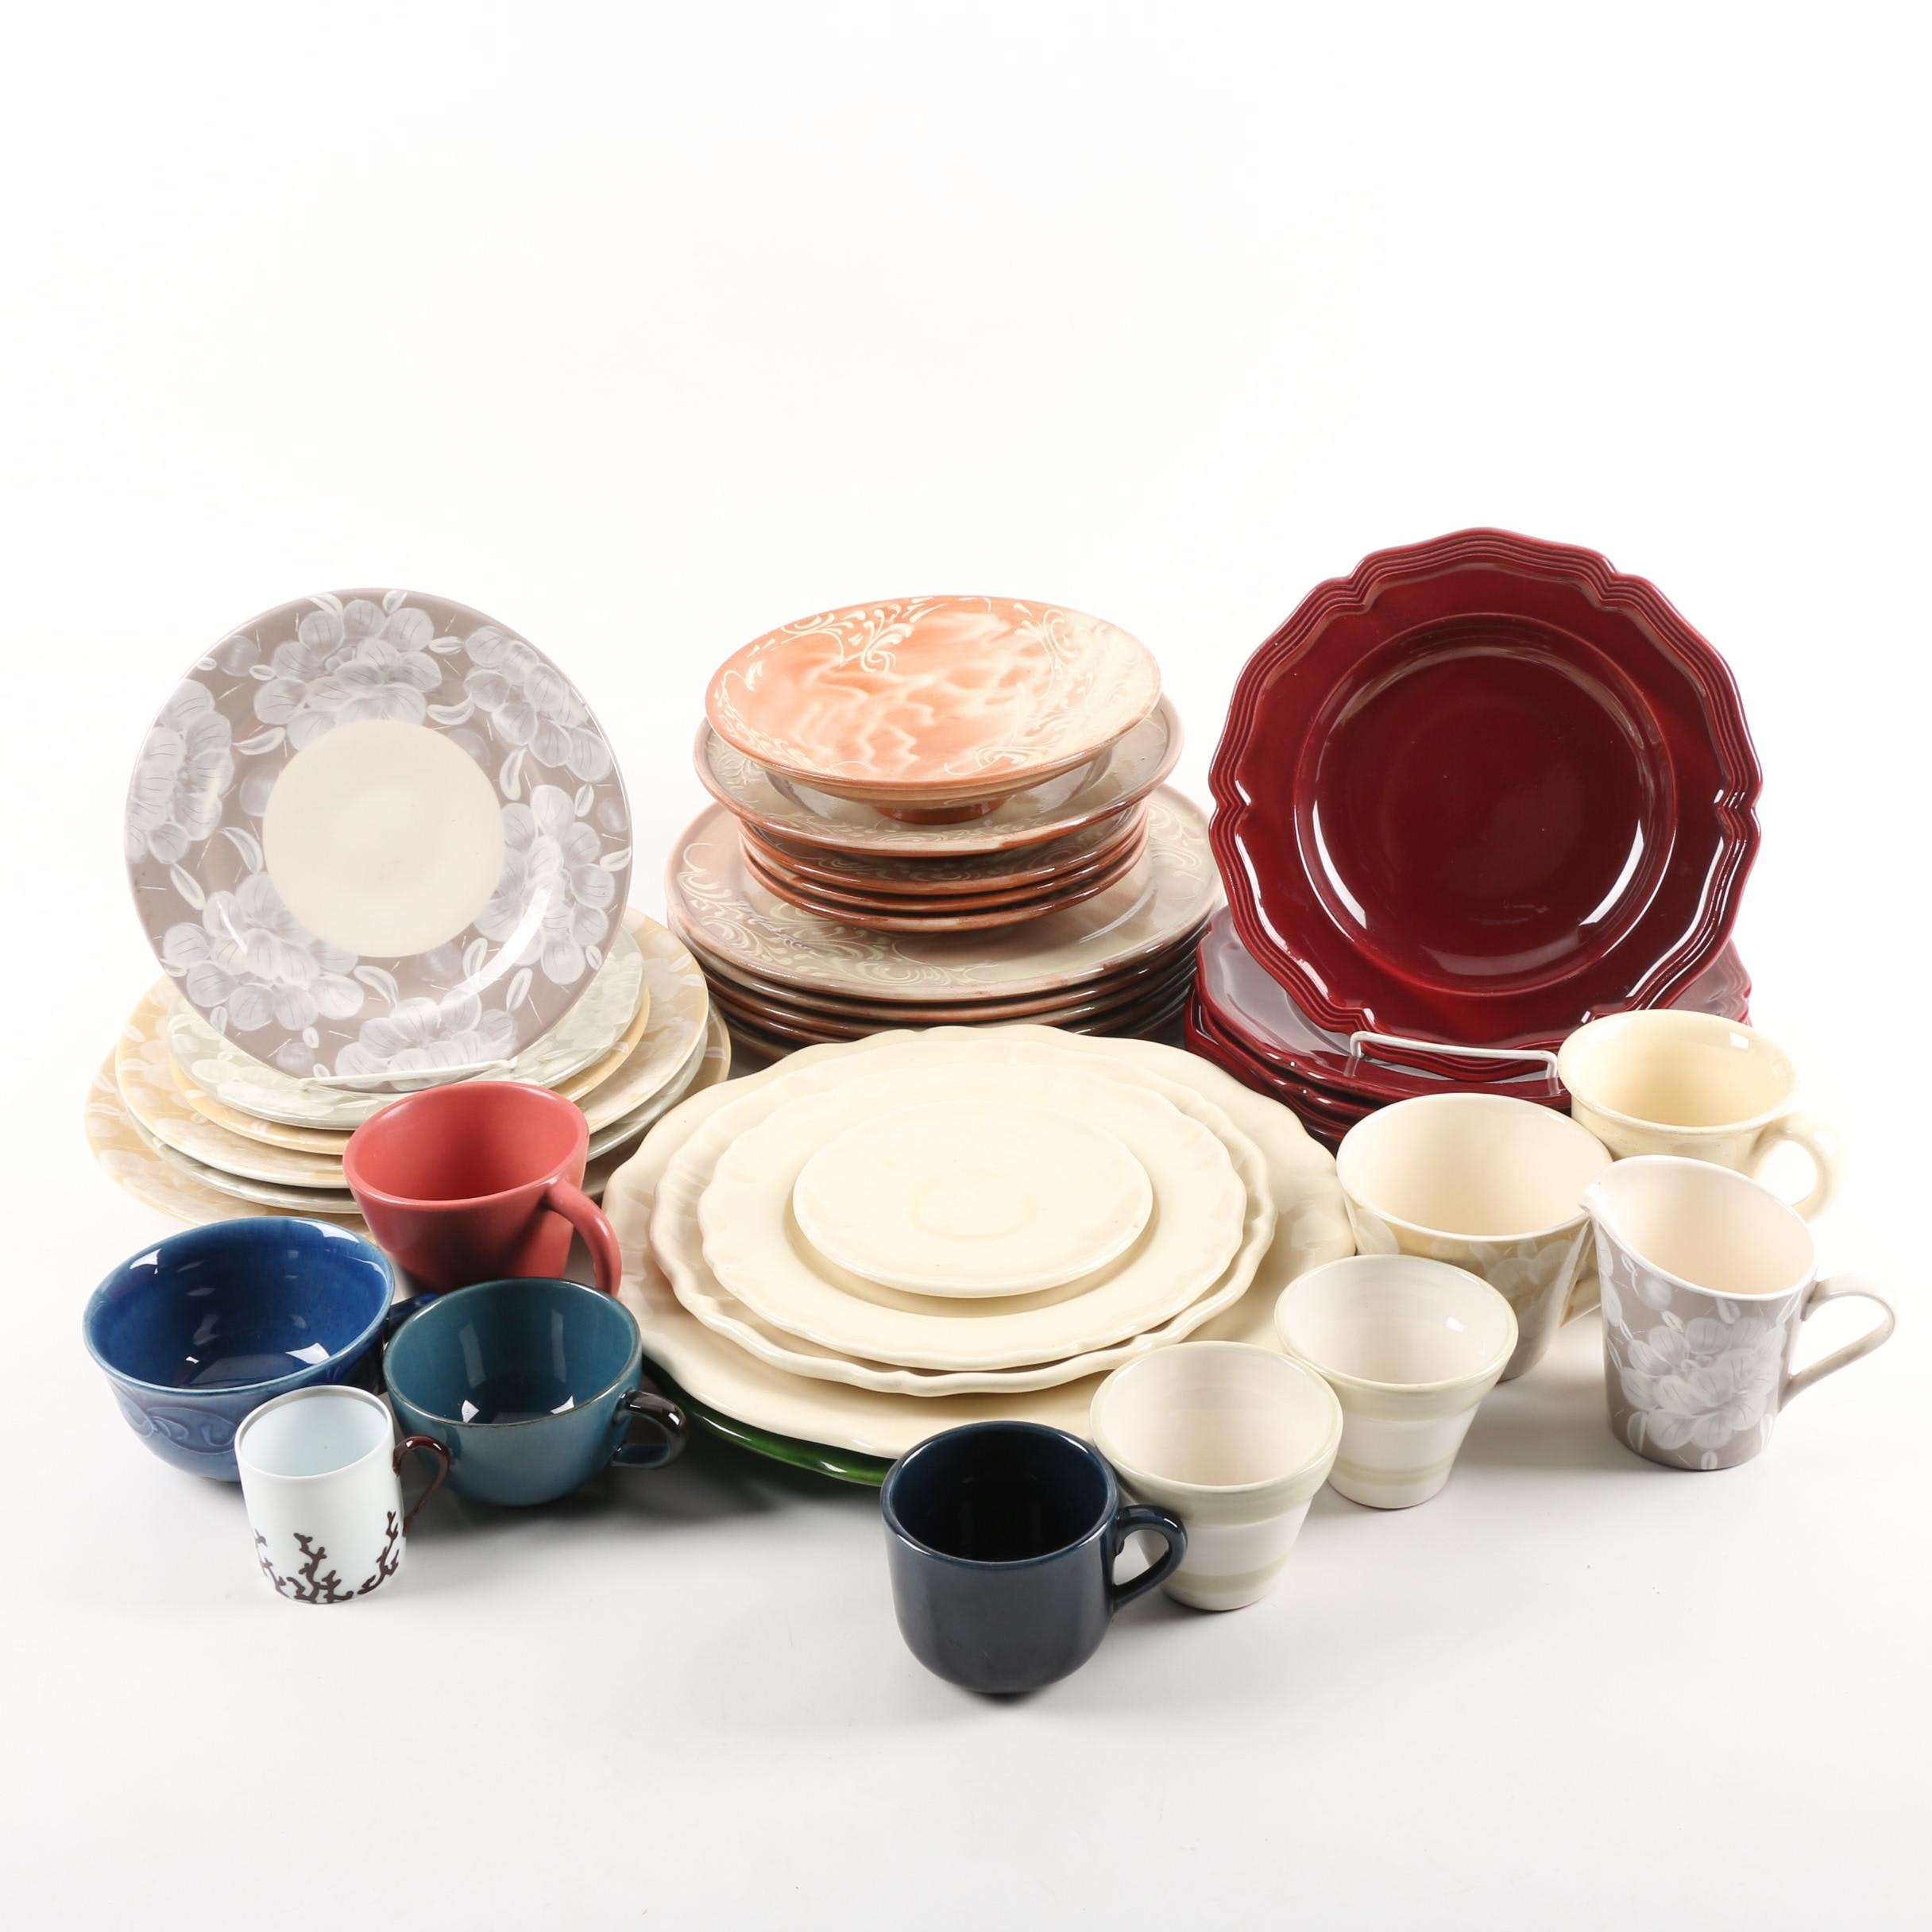 Assorted Stoneware and Porcelain Tableware